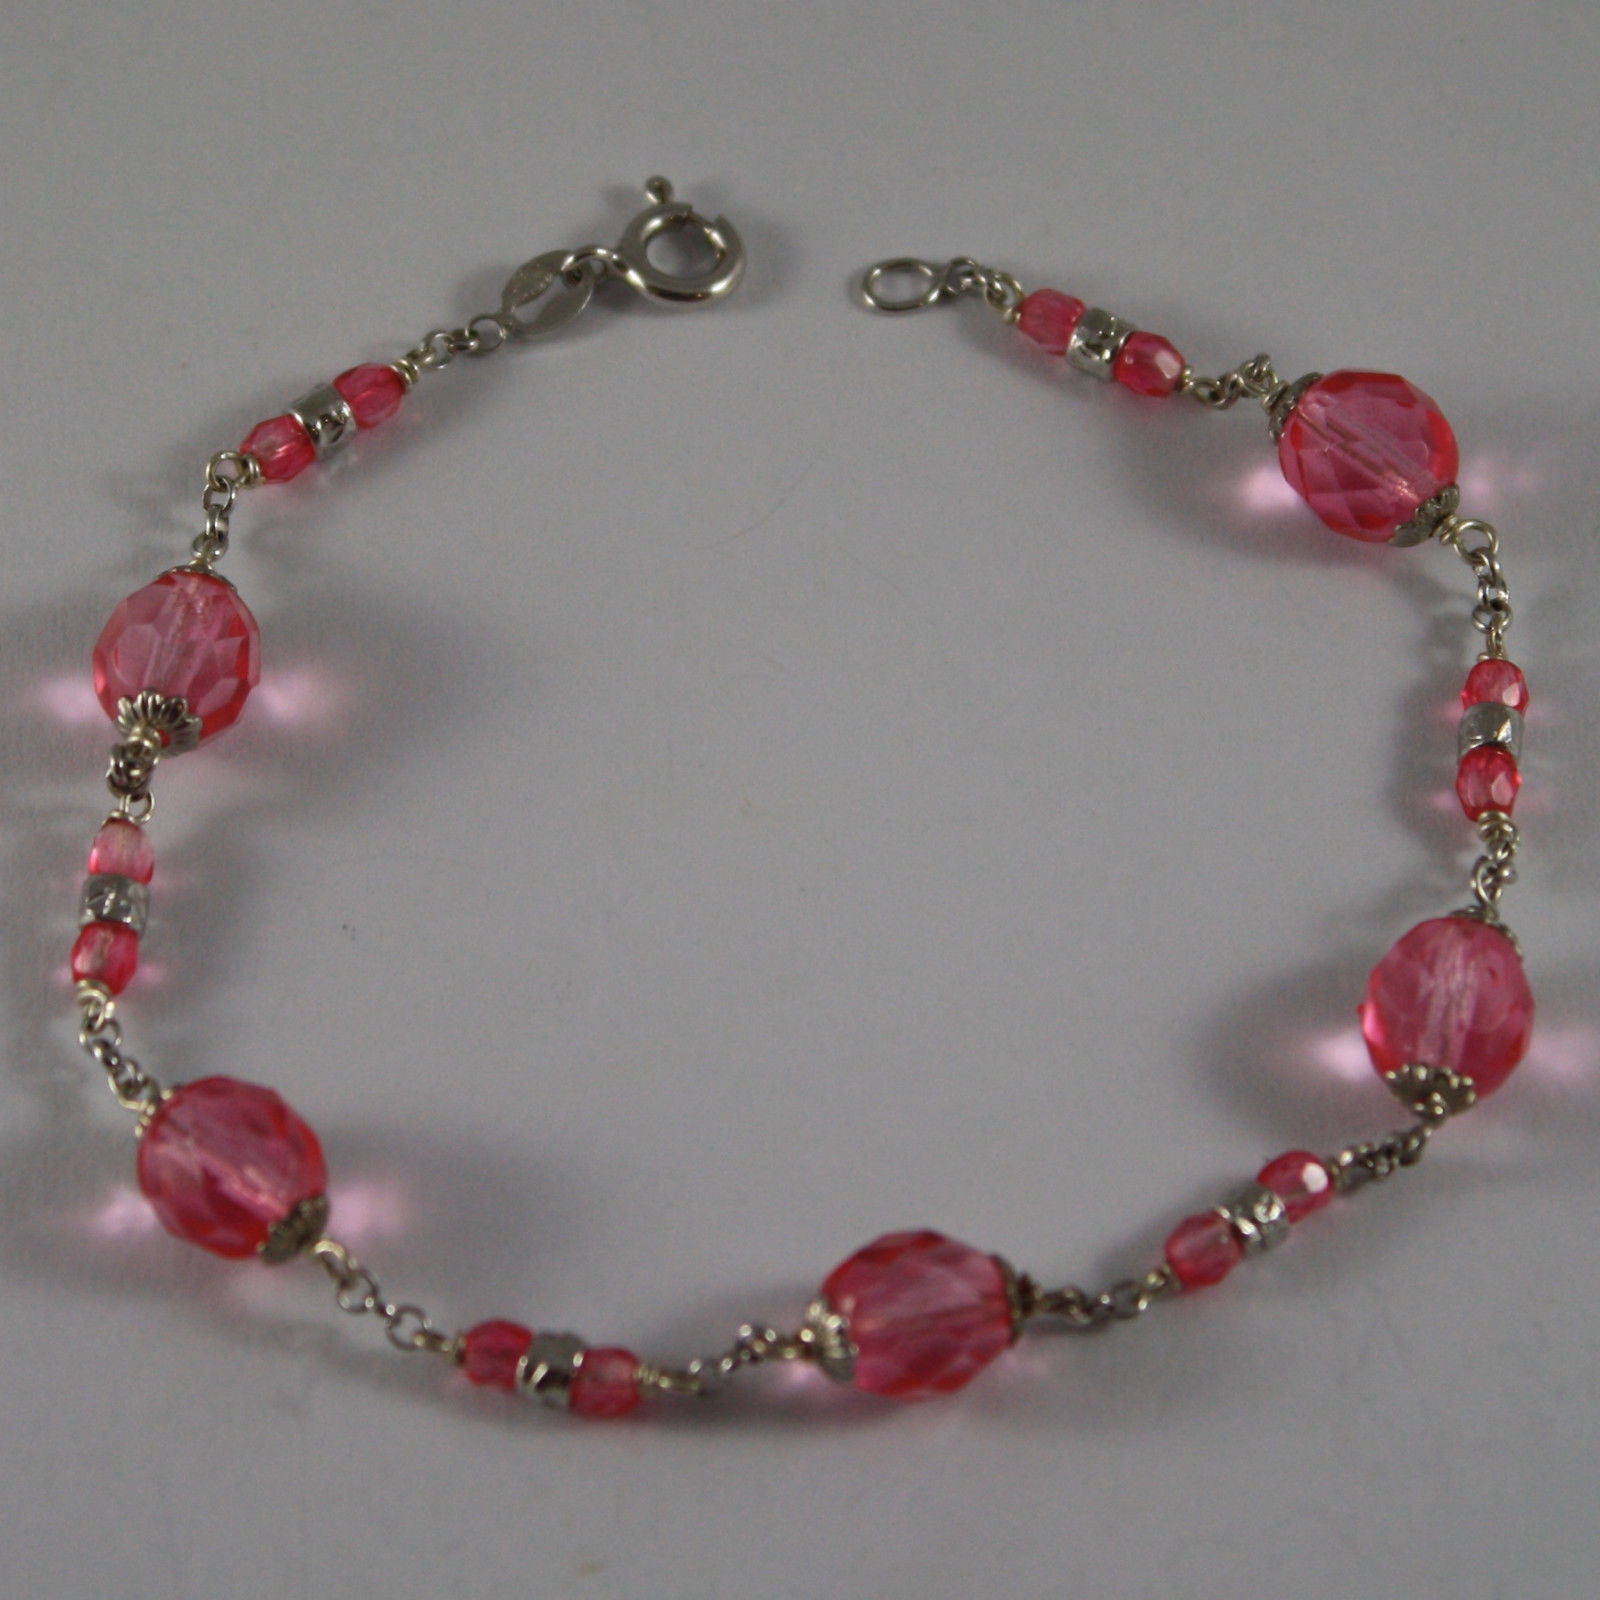 .925 RHODIUM SILVER BRACELET WITH FUCHSIA CRYSTALS